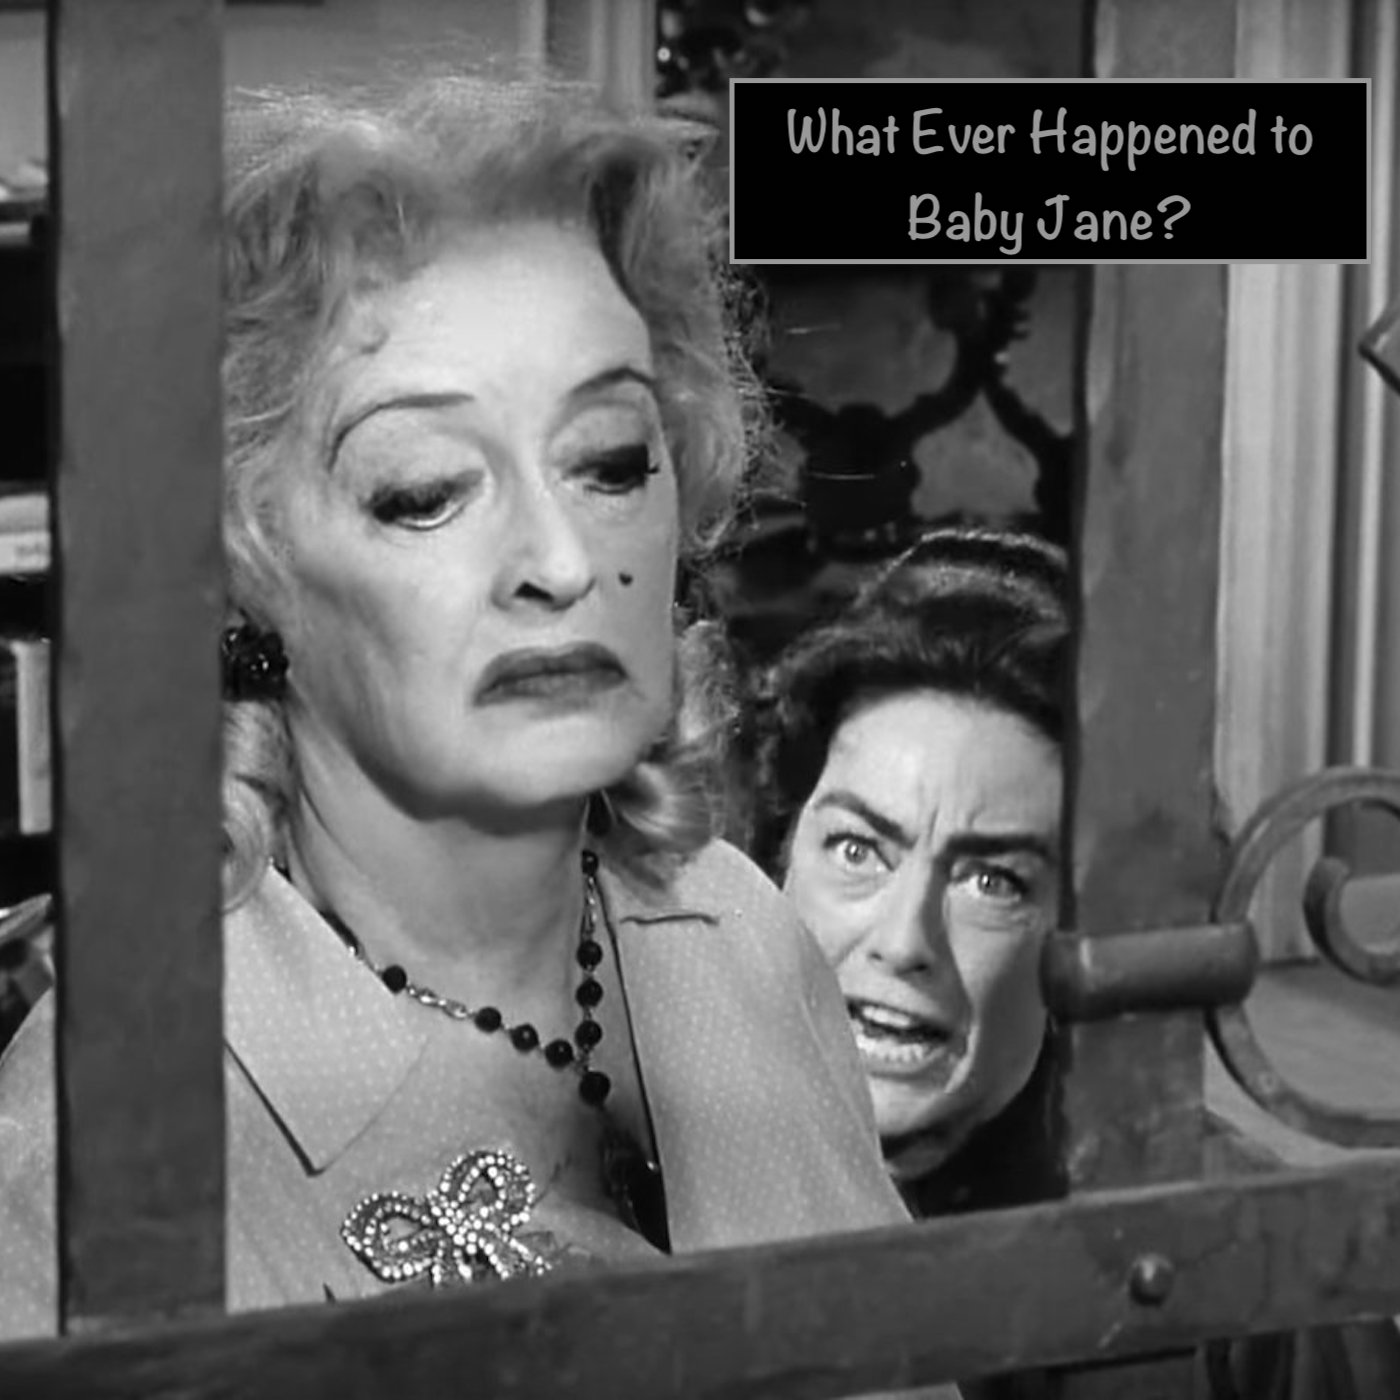 what-ever-happened-to-baby-jane-watching-recommendation-videoSixteenByNineJumbo1600